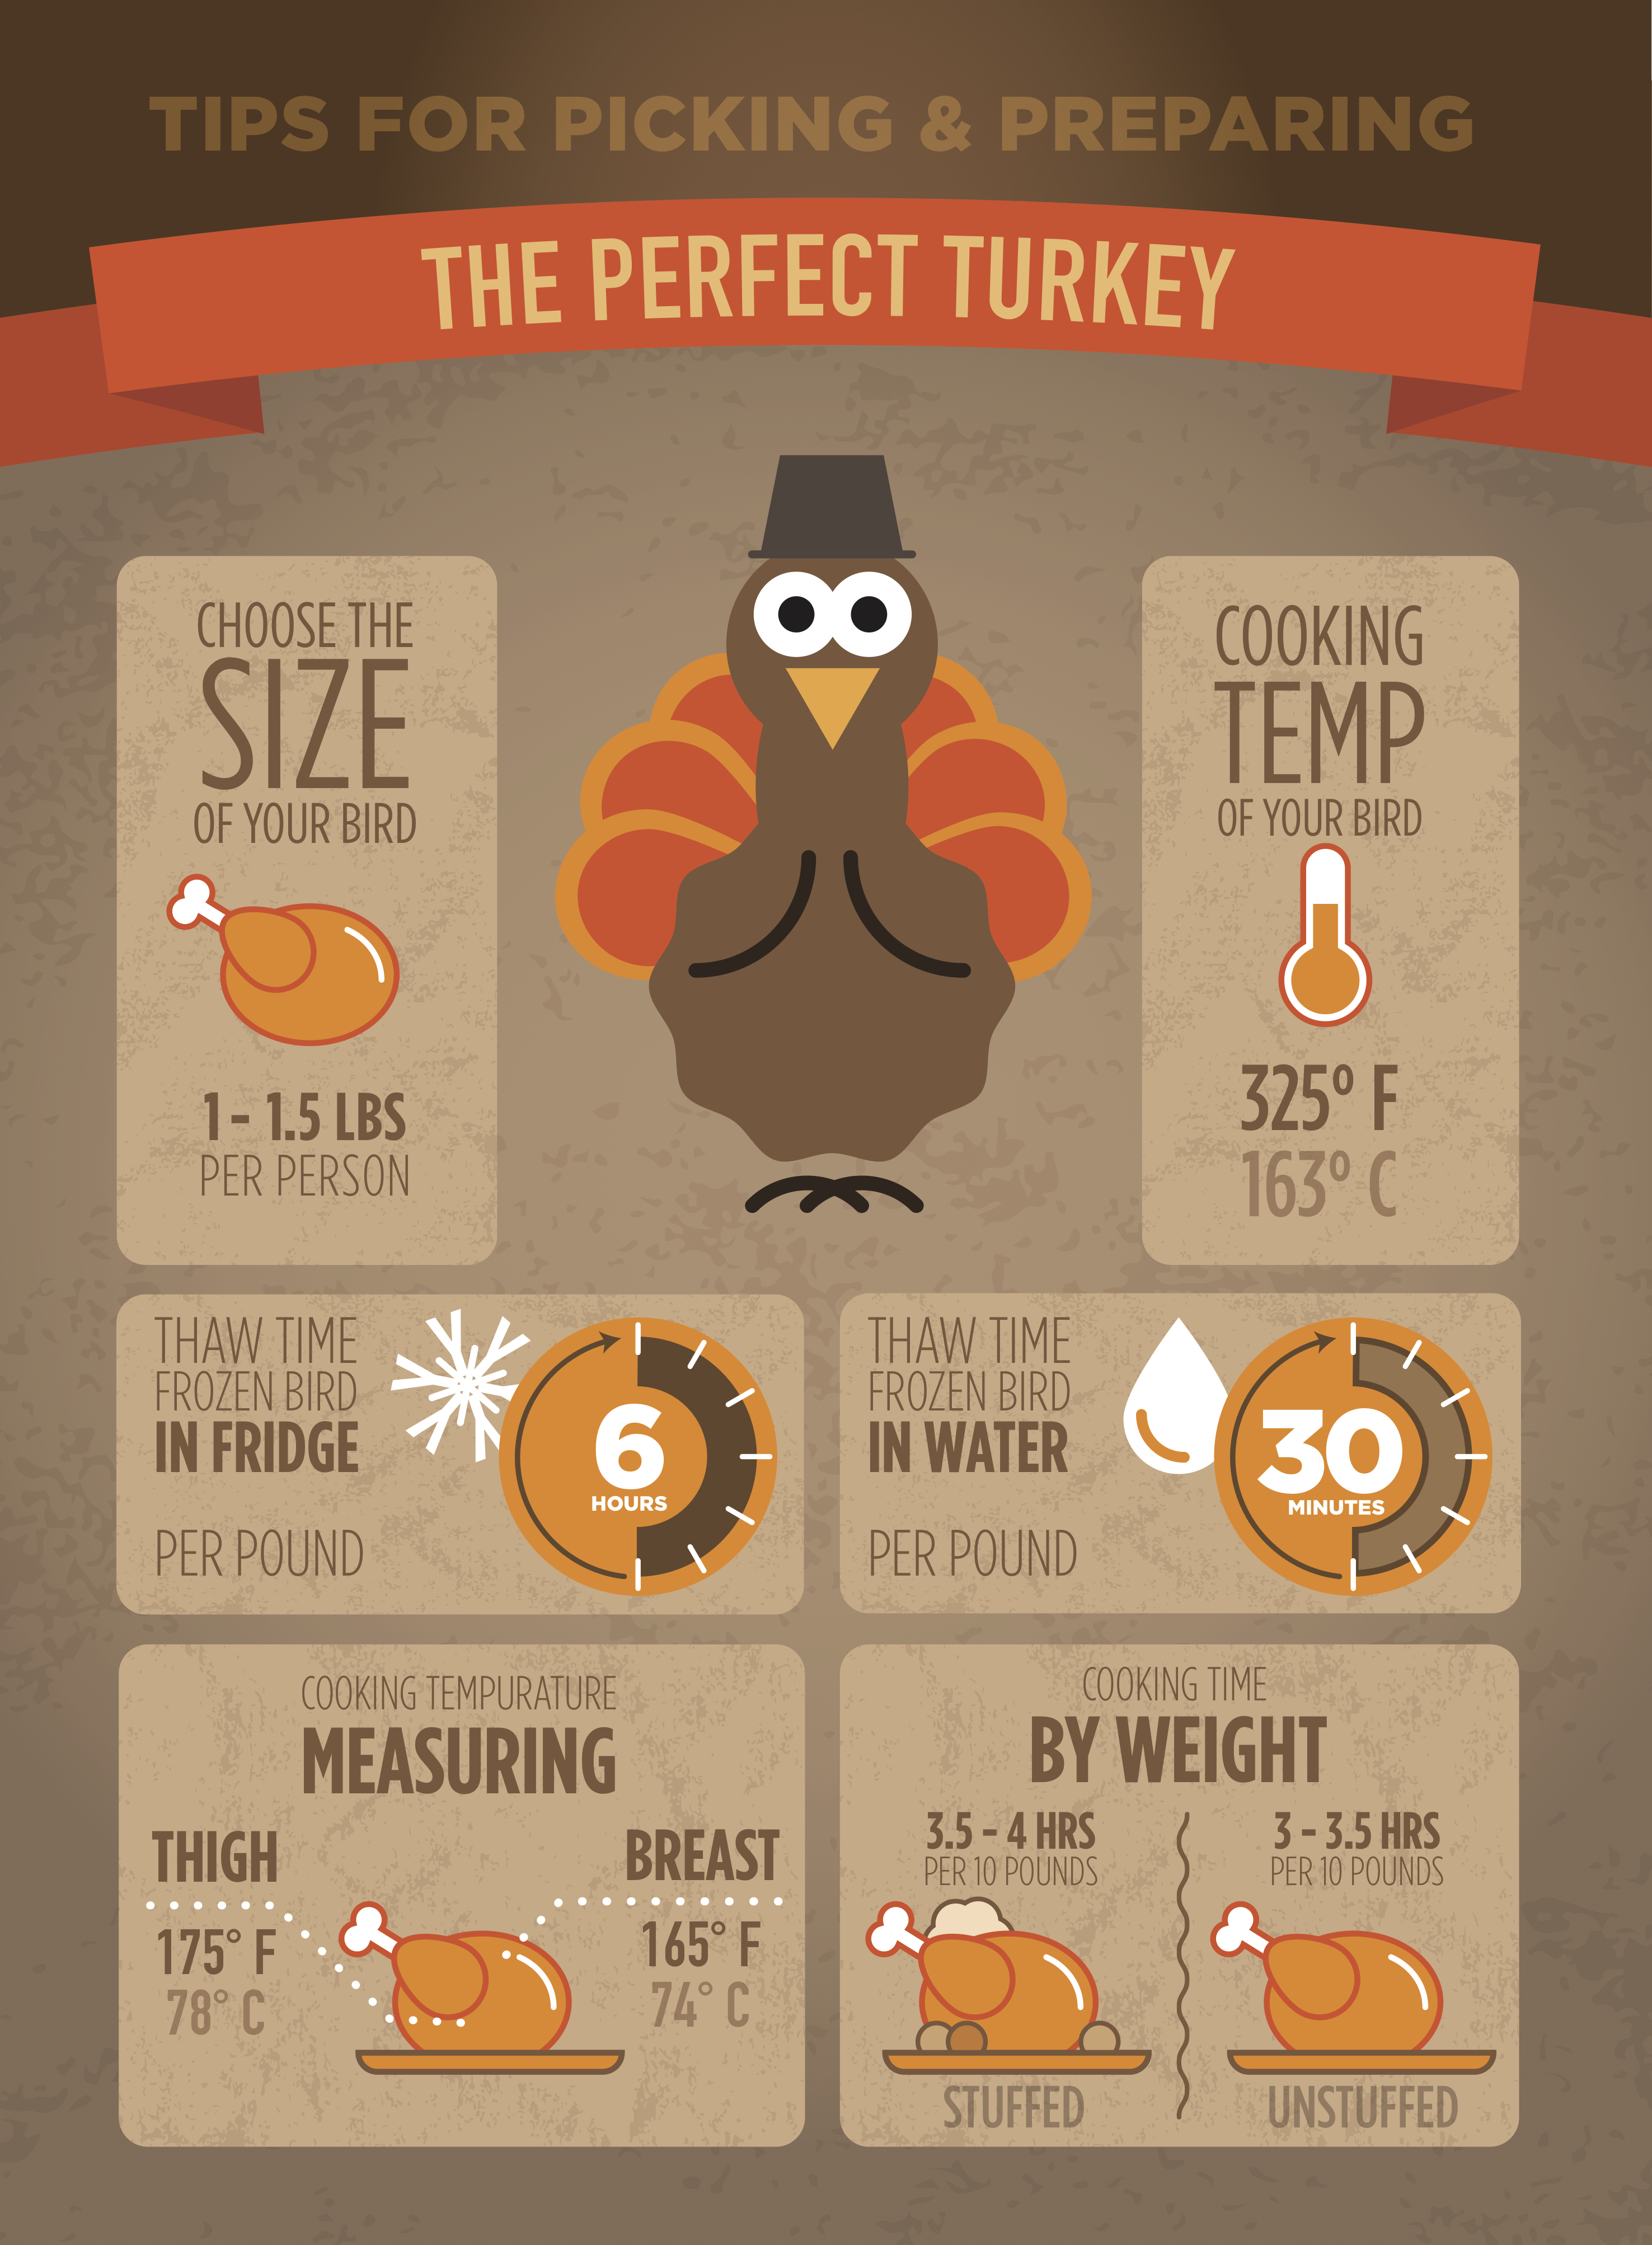 INFOGRAPHIC: Tips for Picking & Preparing the Perfect Turkey